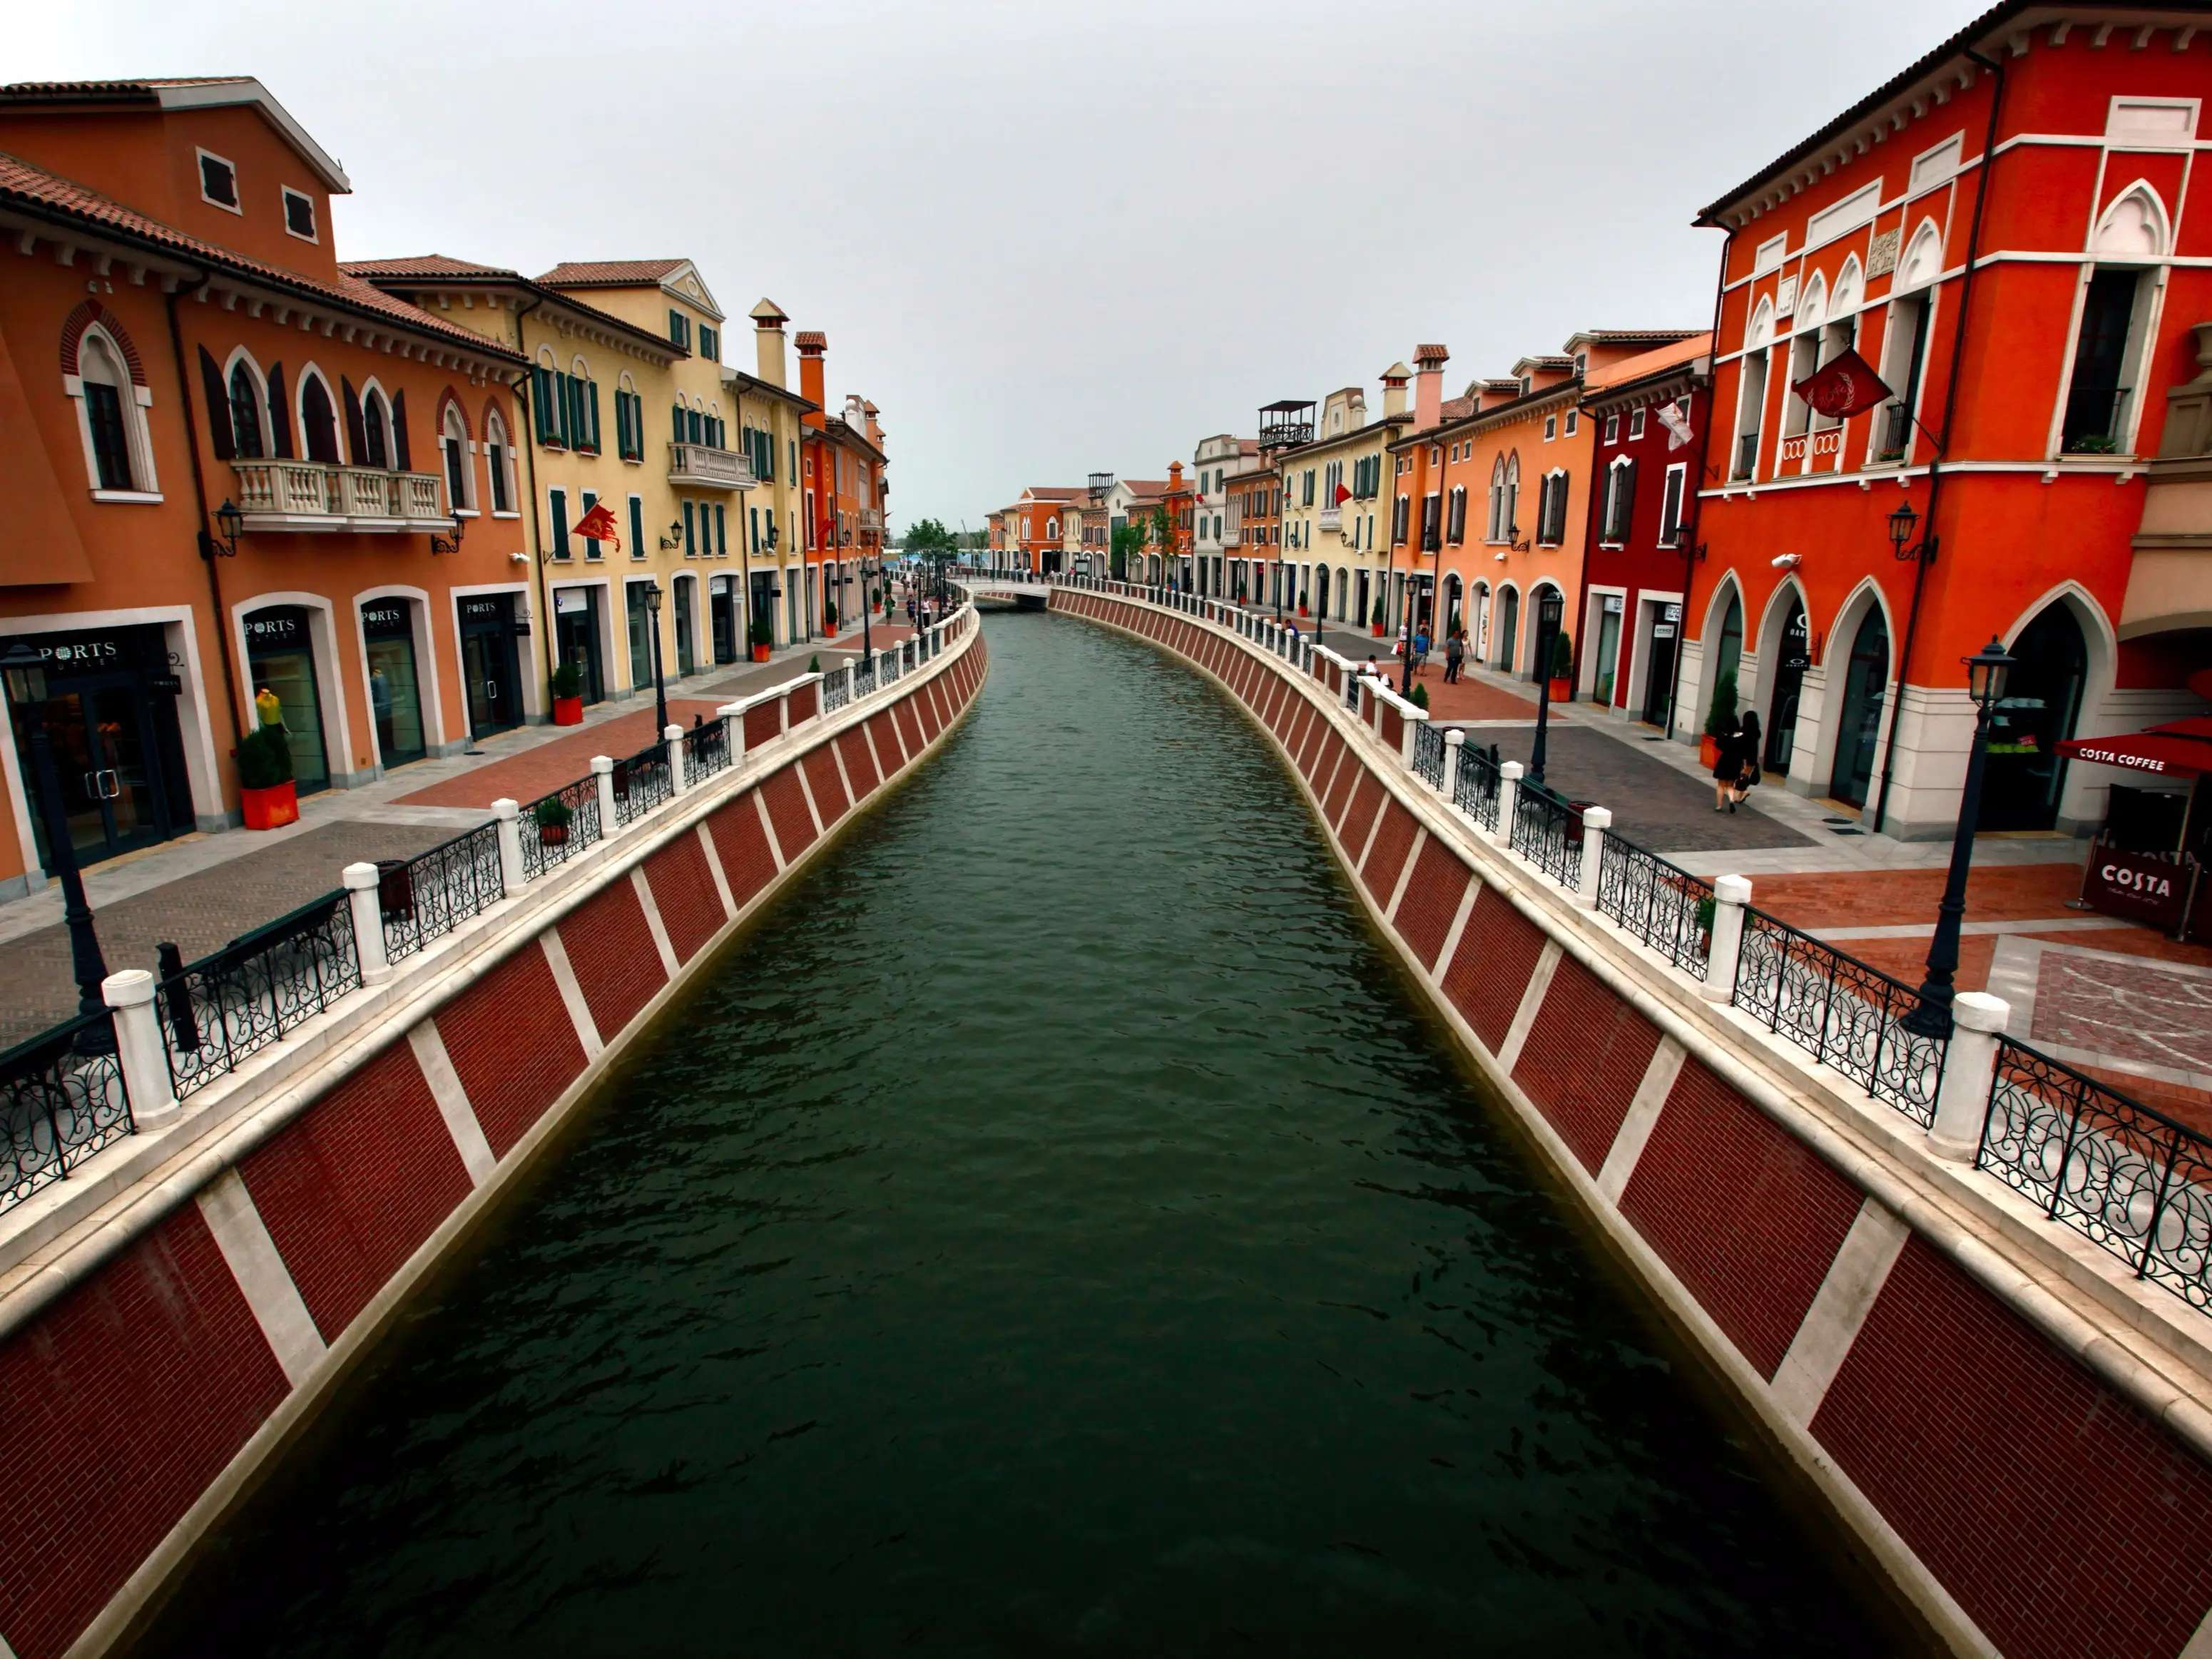 Locatednear the port city of Tianjinis Florentia Village, an elaborately designed outlet mall that's meant to resemble anItalian village. It comes complete with fountains, canals, and mosaics, as well as